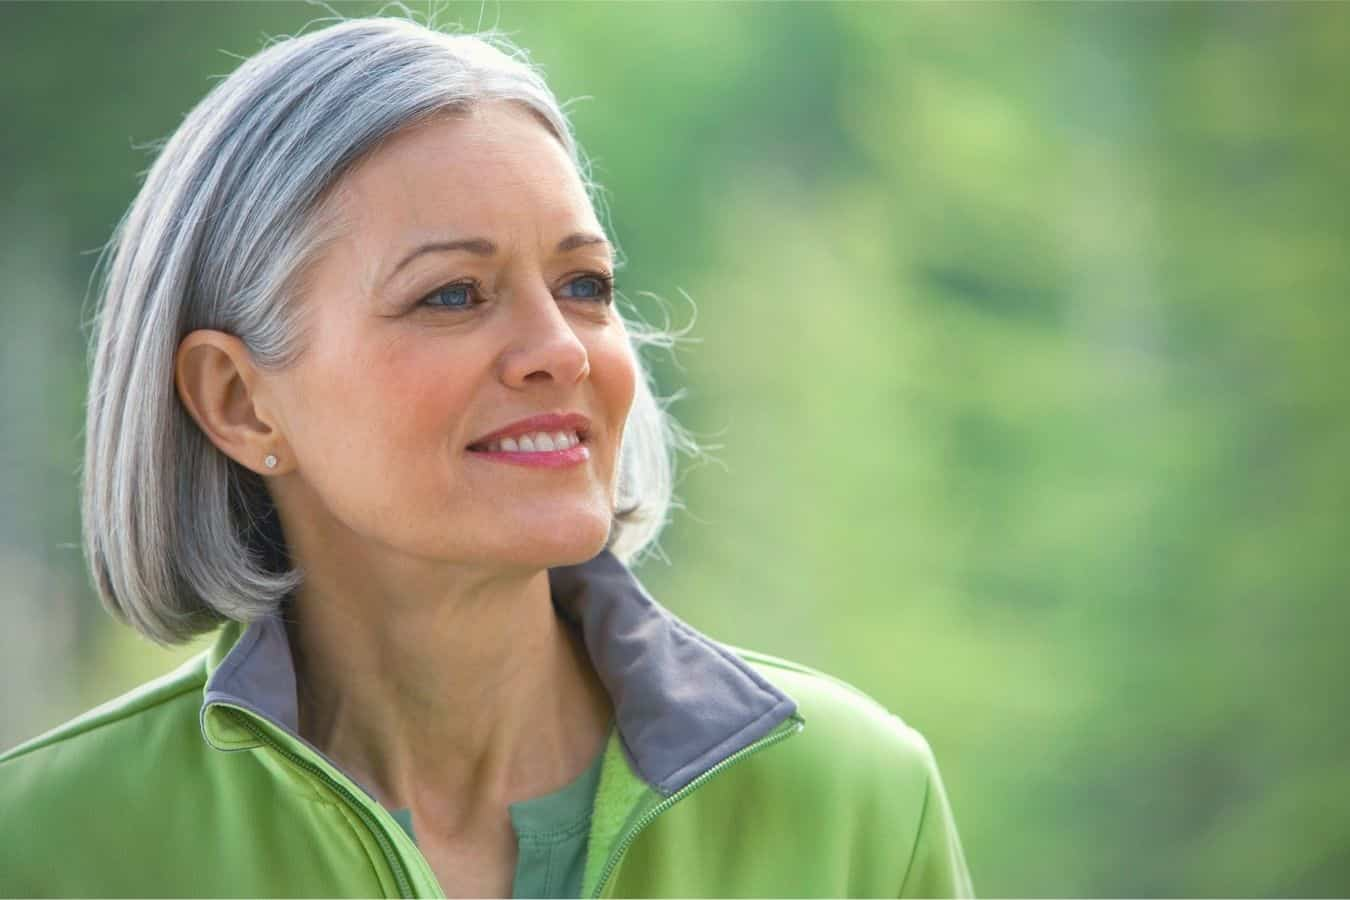 Remove Permanent Hair Dye From Gray Hair